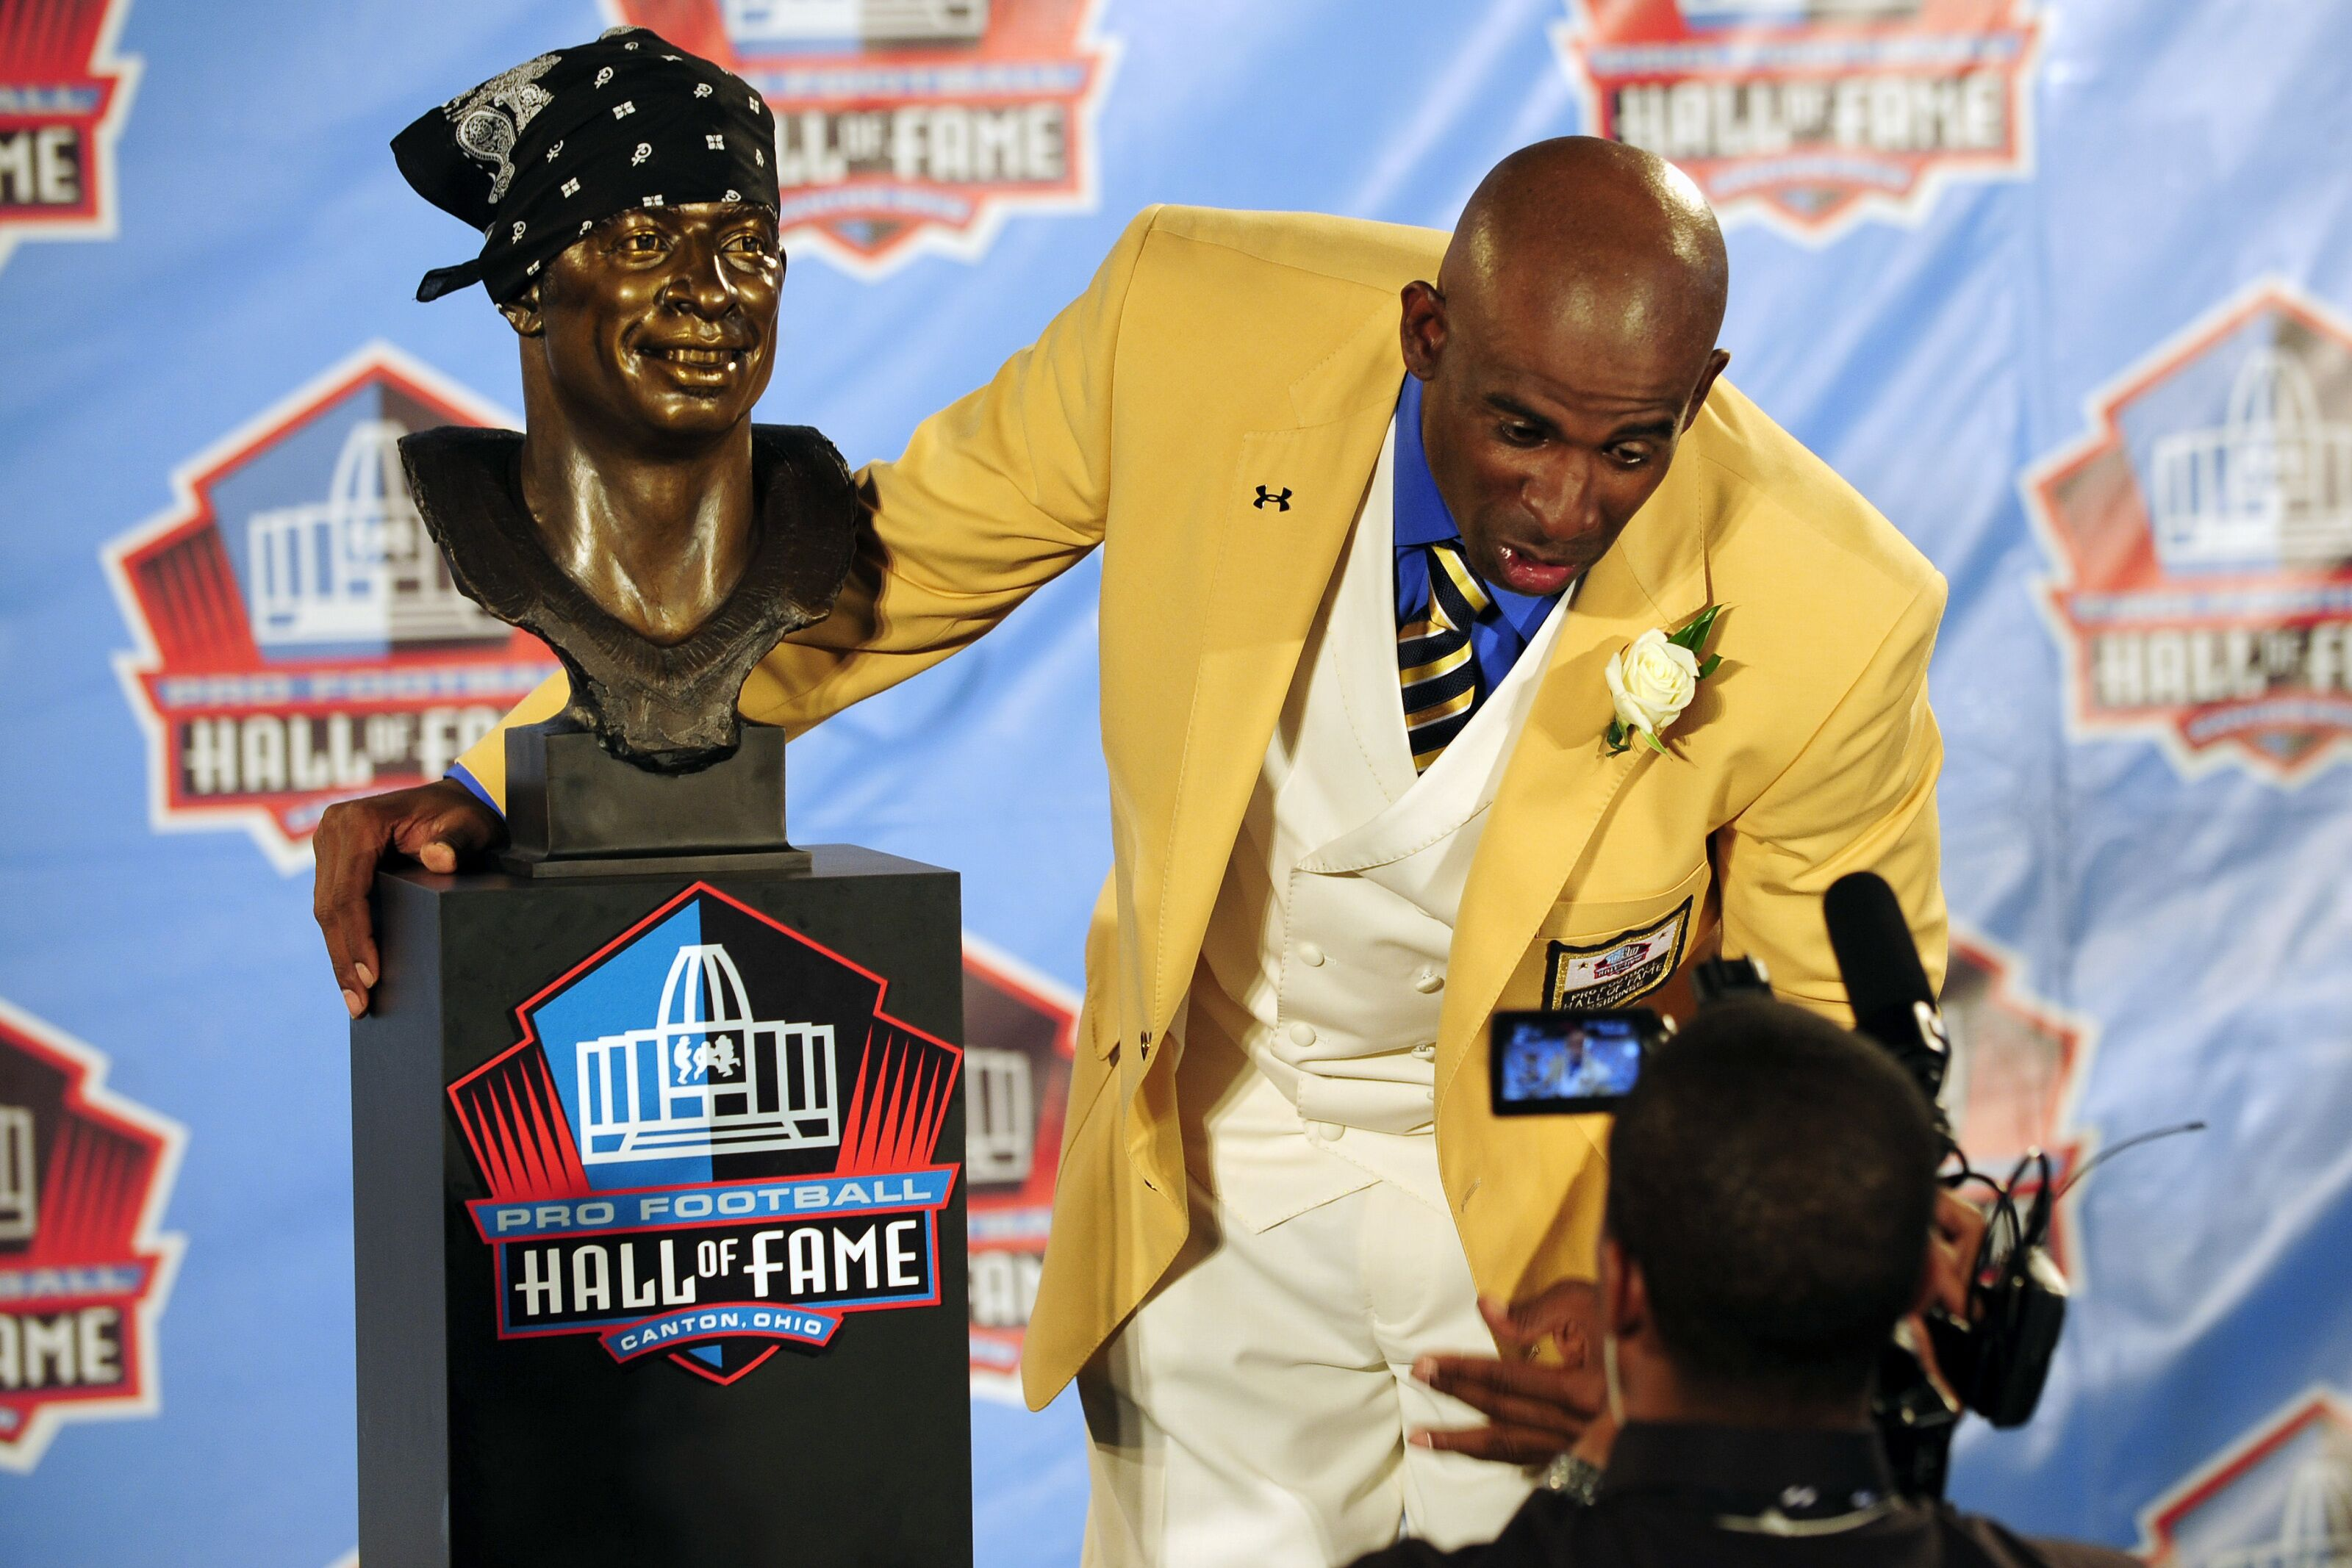 Deion Sanders doesn't even meet his own Hall of Fame requirements